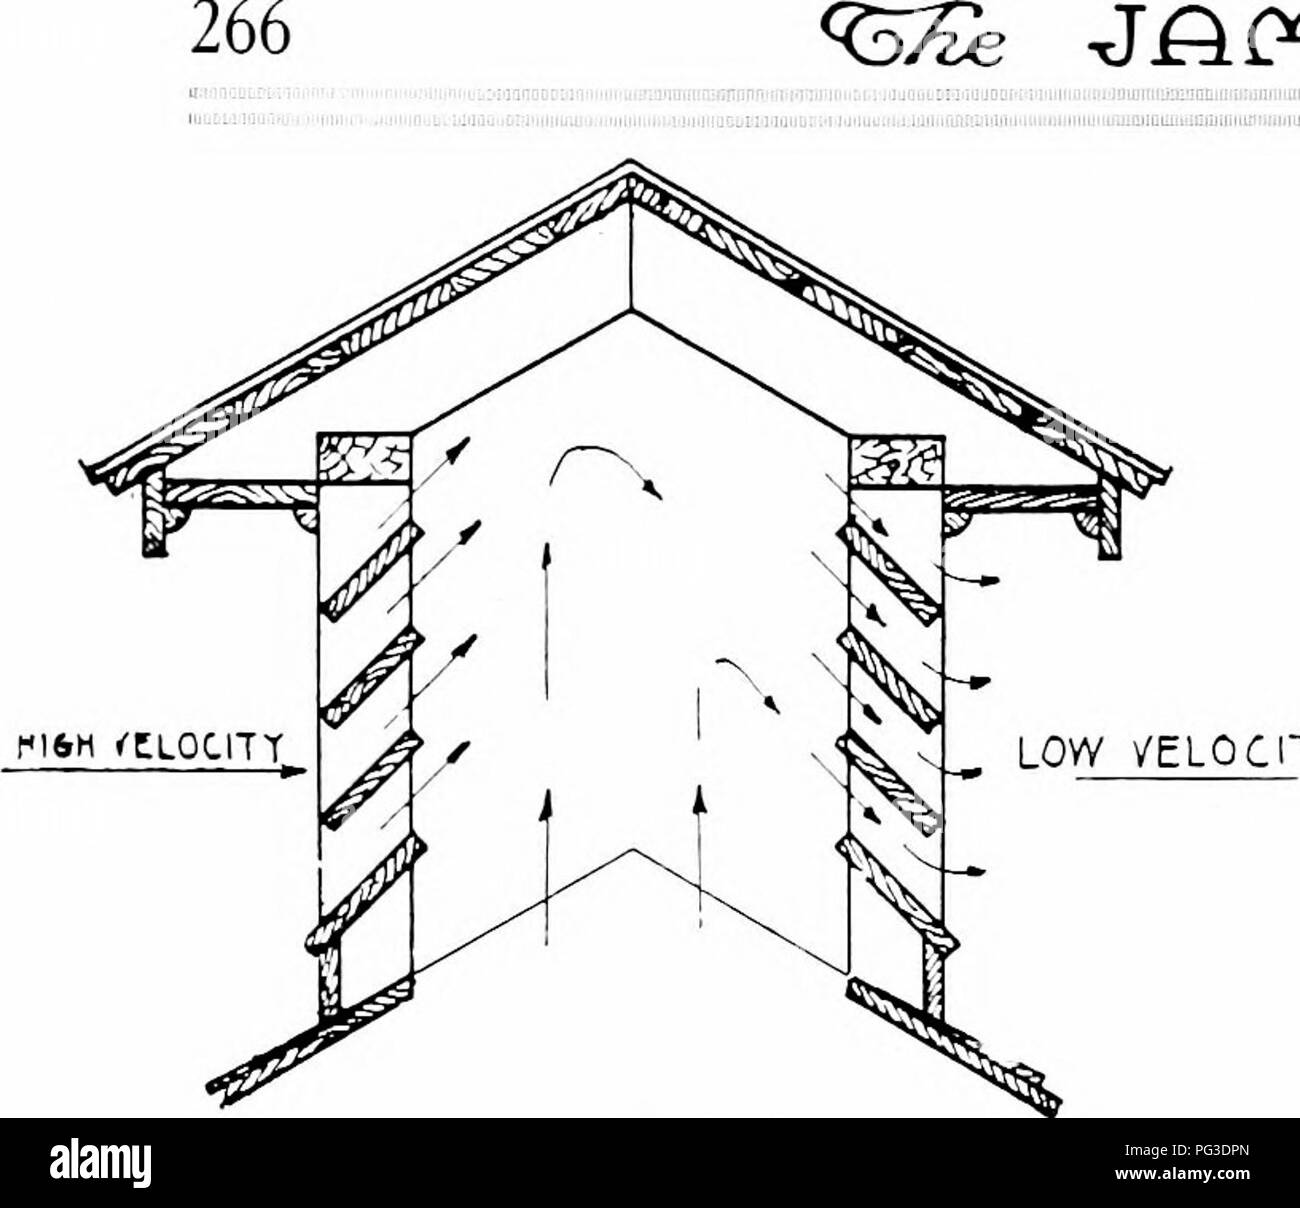 hight resolution of the james way a book showing how to build and equip a practical up